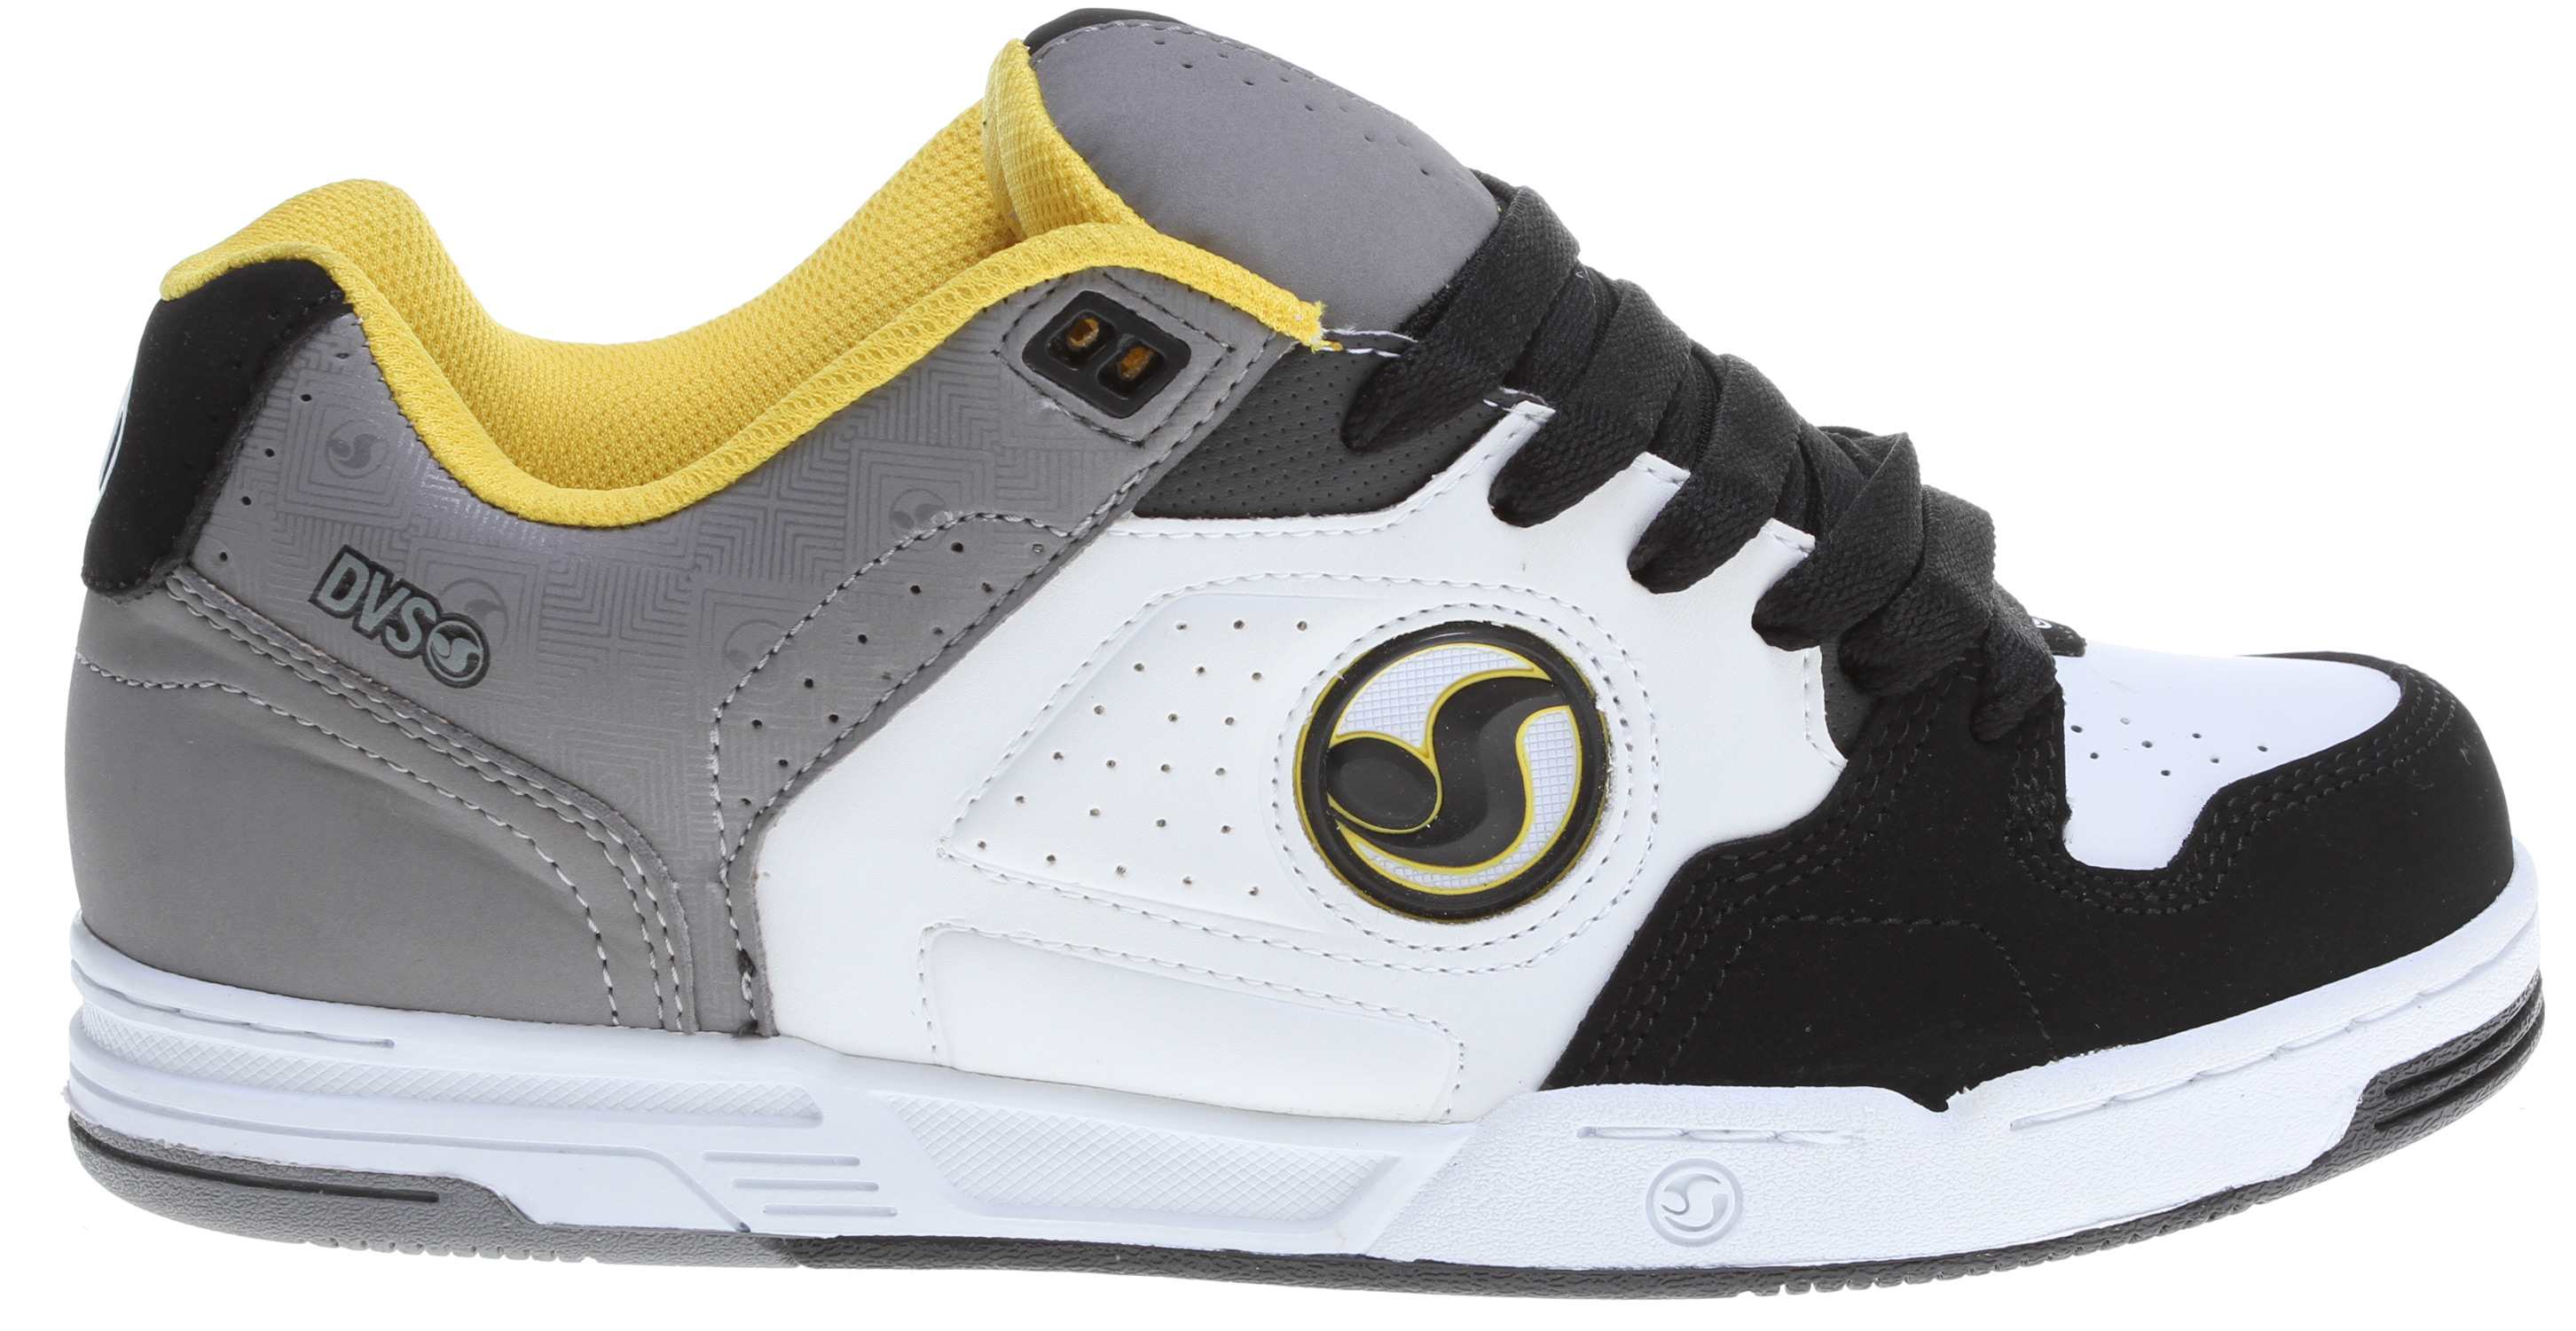 Skateboard Key Features of the DVS Havoc Skate Shoes: Brian Deegan signature series Leather/nubuck/suede upper material Ventilated mesh panels for breathability High density collar & tongue padding Direct injected TPR quarter logo detail High impact insole & midsole unit Durable cupsole construction - $53.95